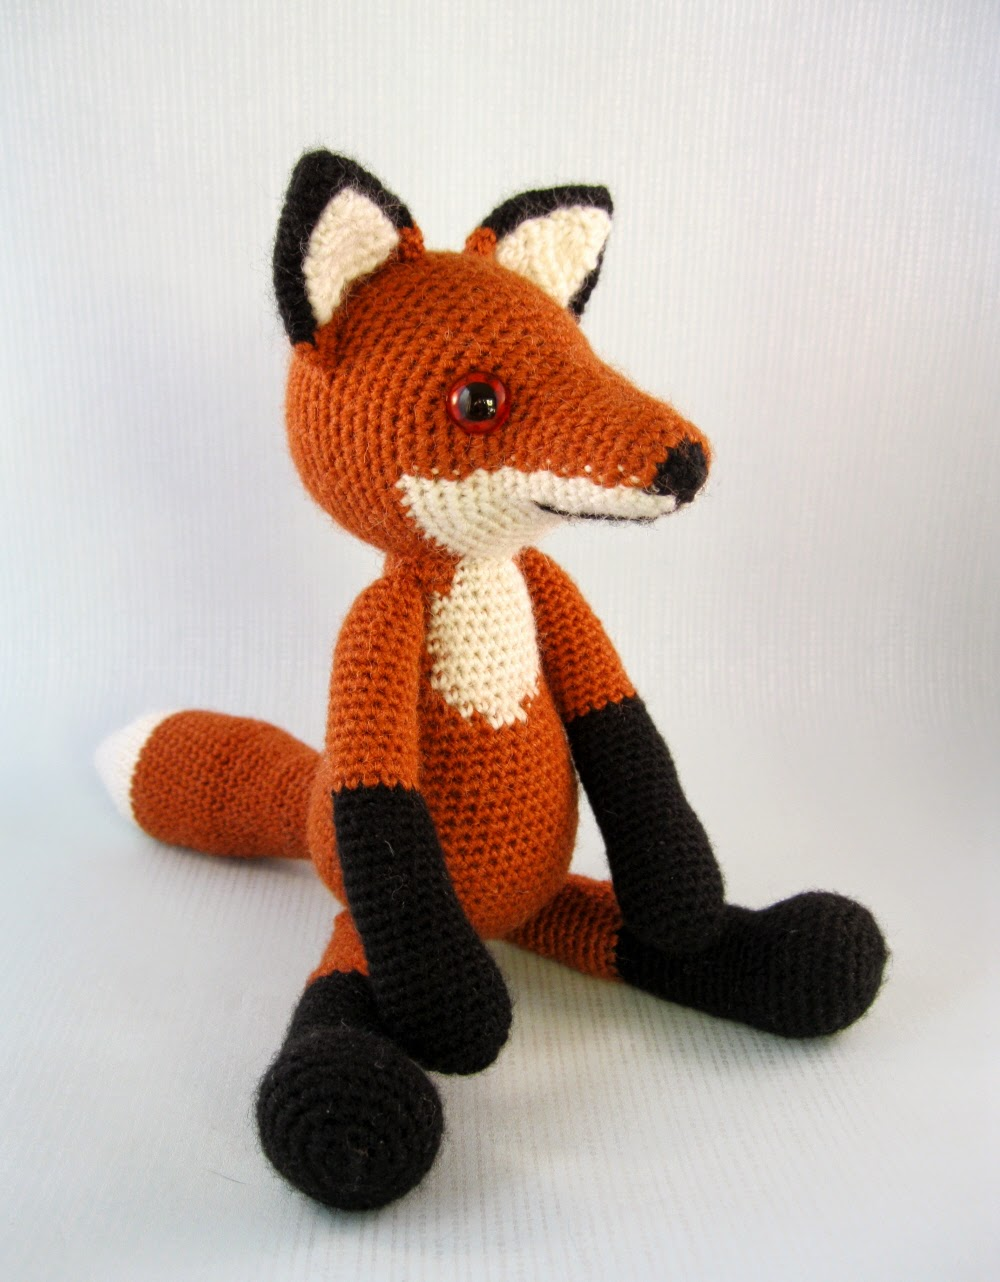 Fox Amigurumi Ravelry : LucyRavenscar - Crochet Creatures: Bracken the Fox